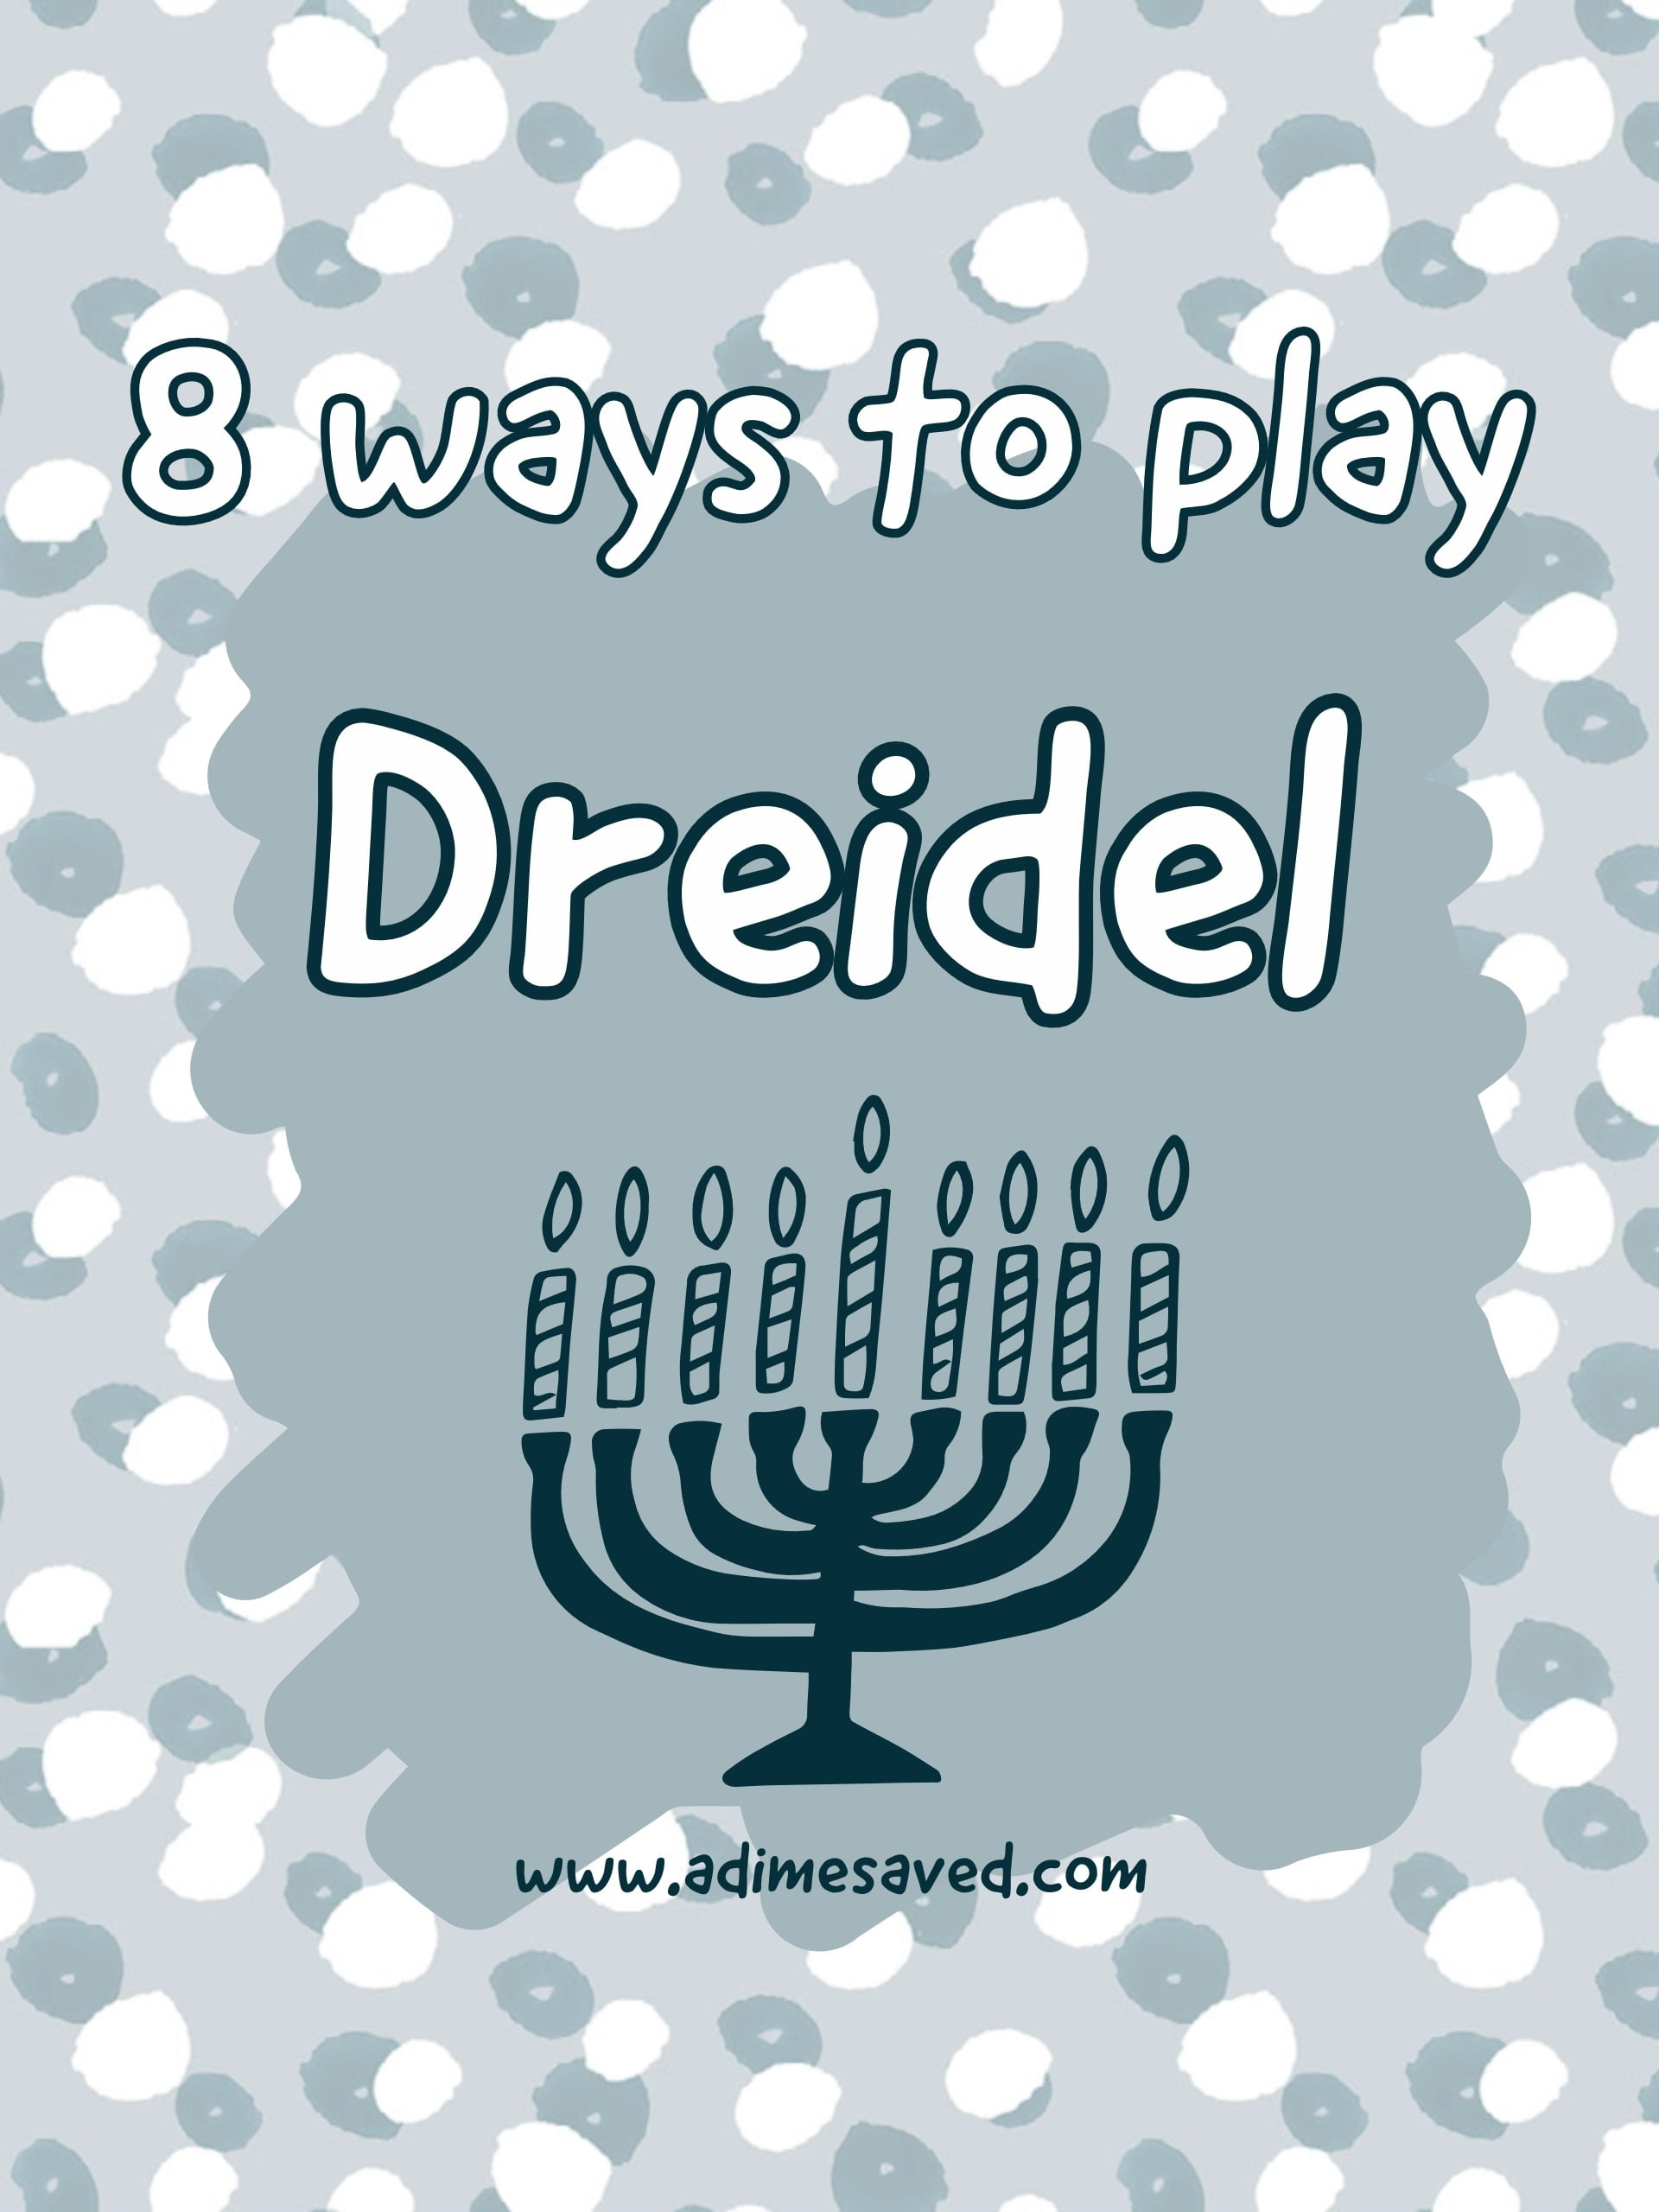 8 Ways to Play Dreidel